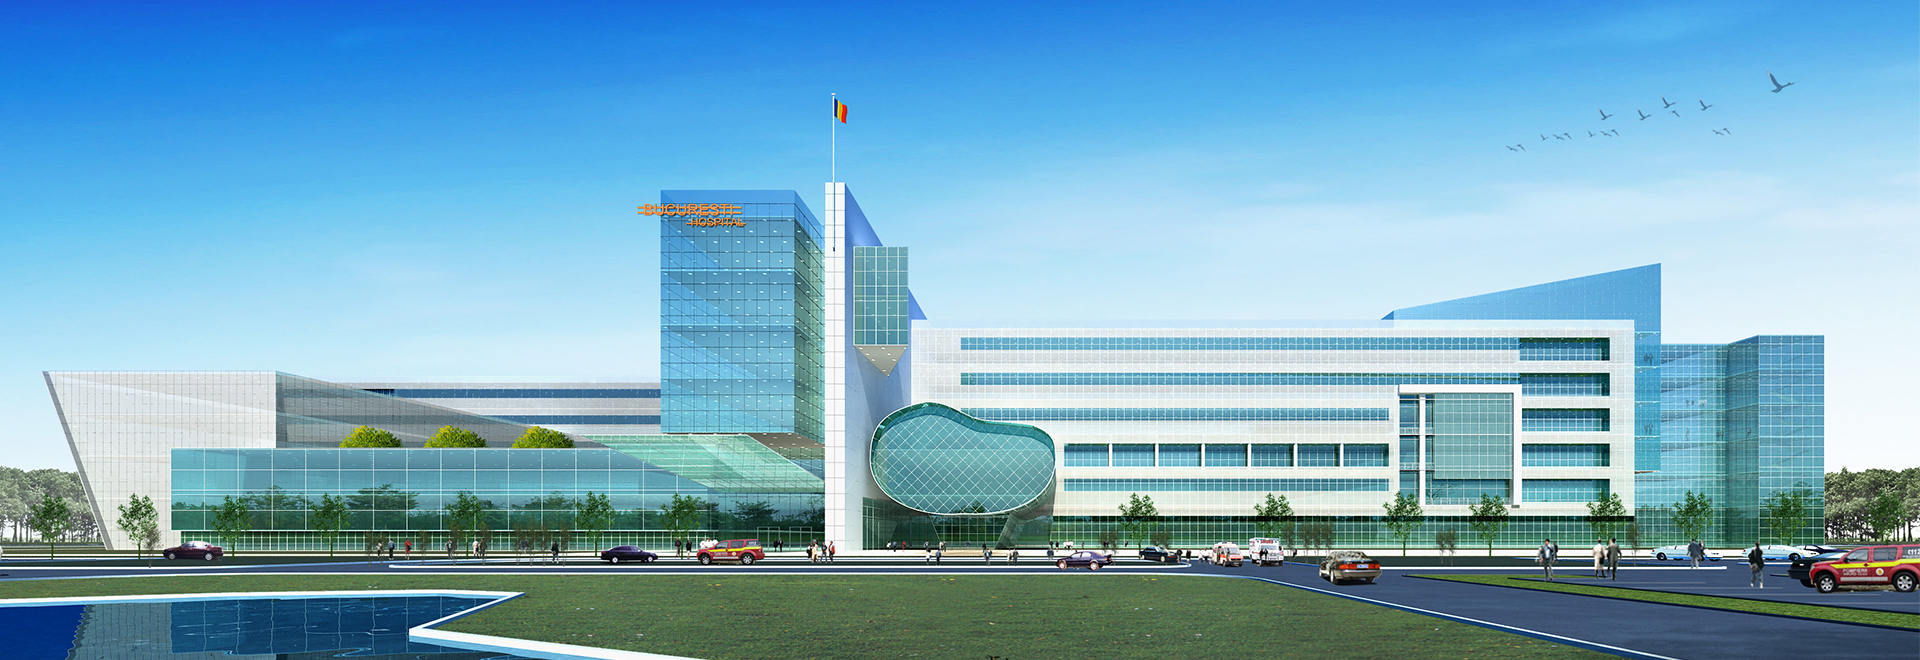 Bucharest Univerity Medical Center